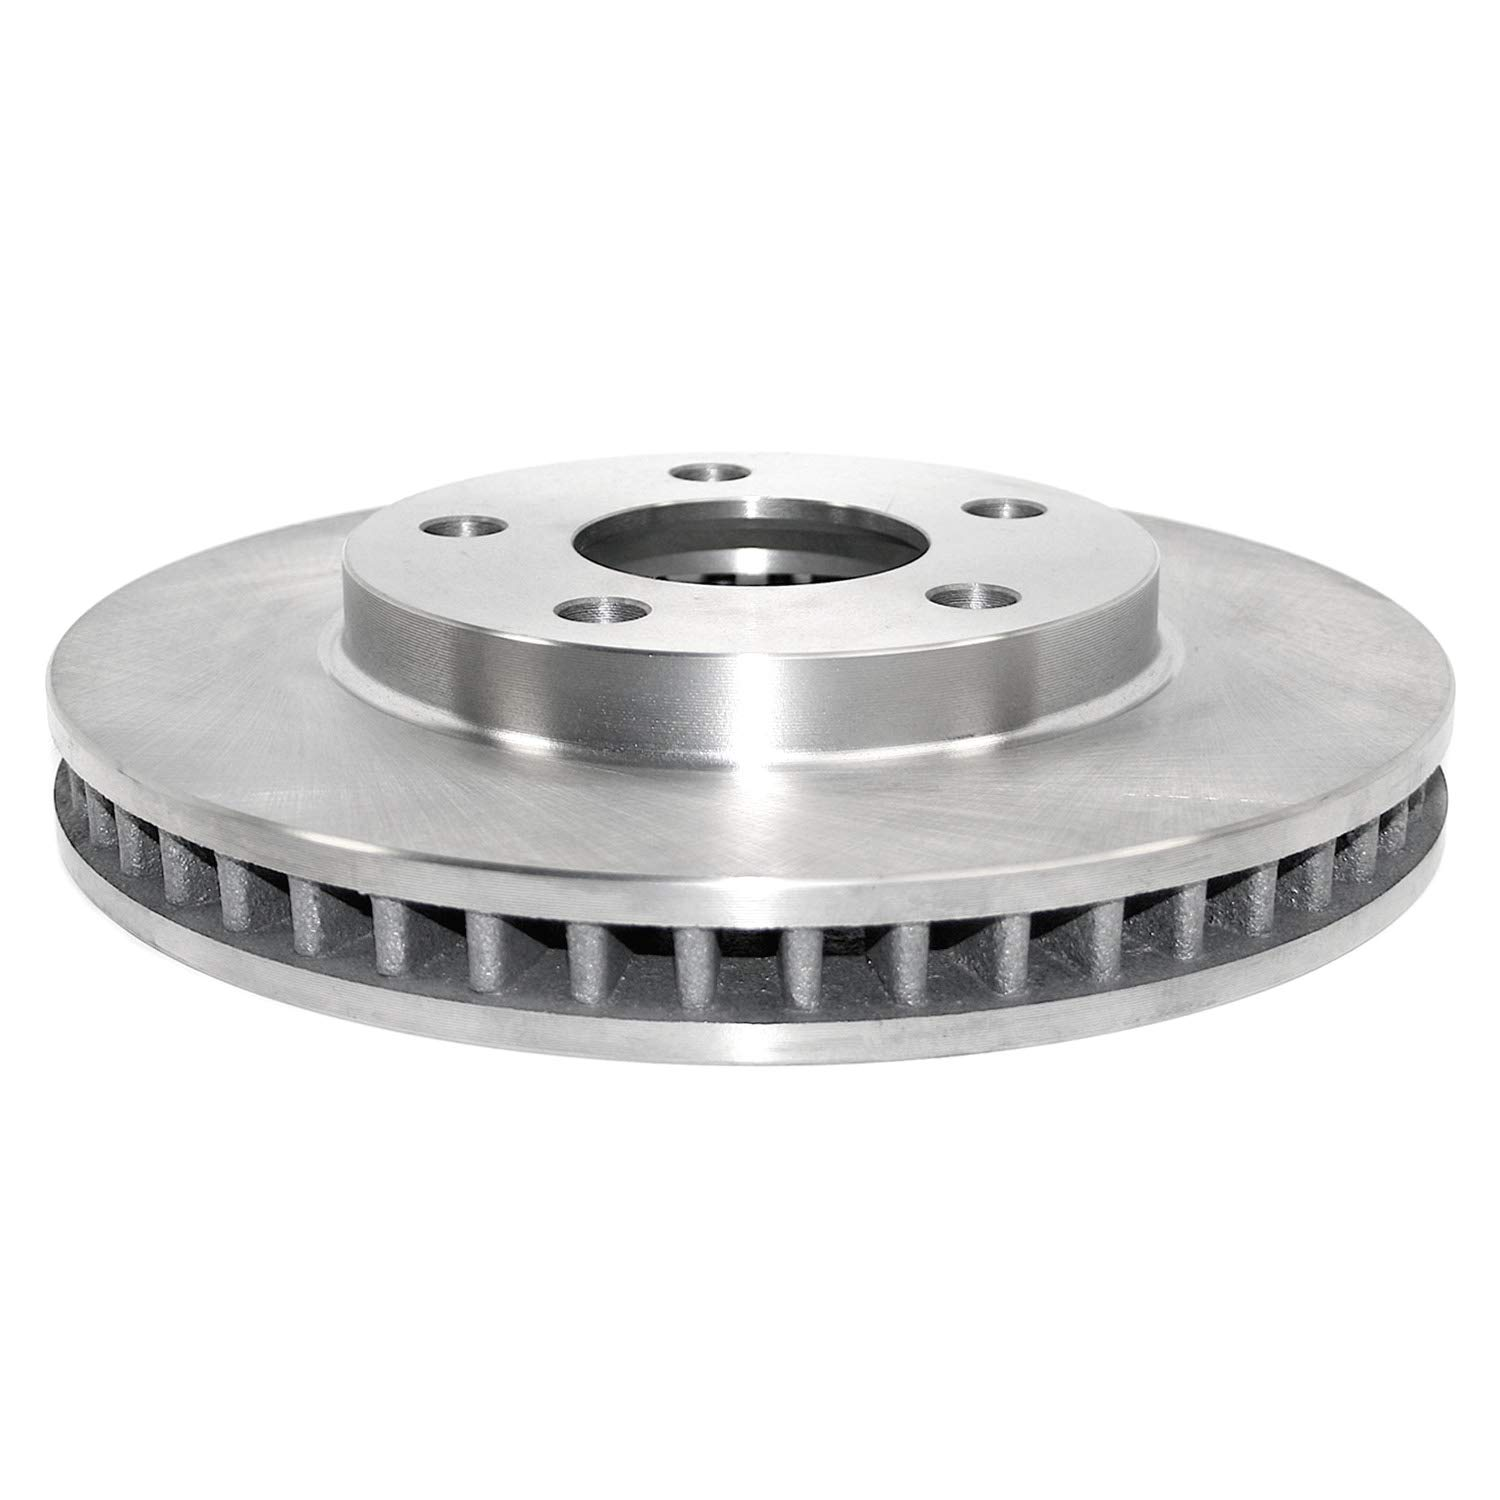 DuraGo BR55036 Front Vented Disc Brake Rotor